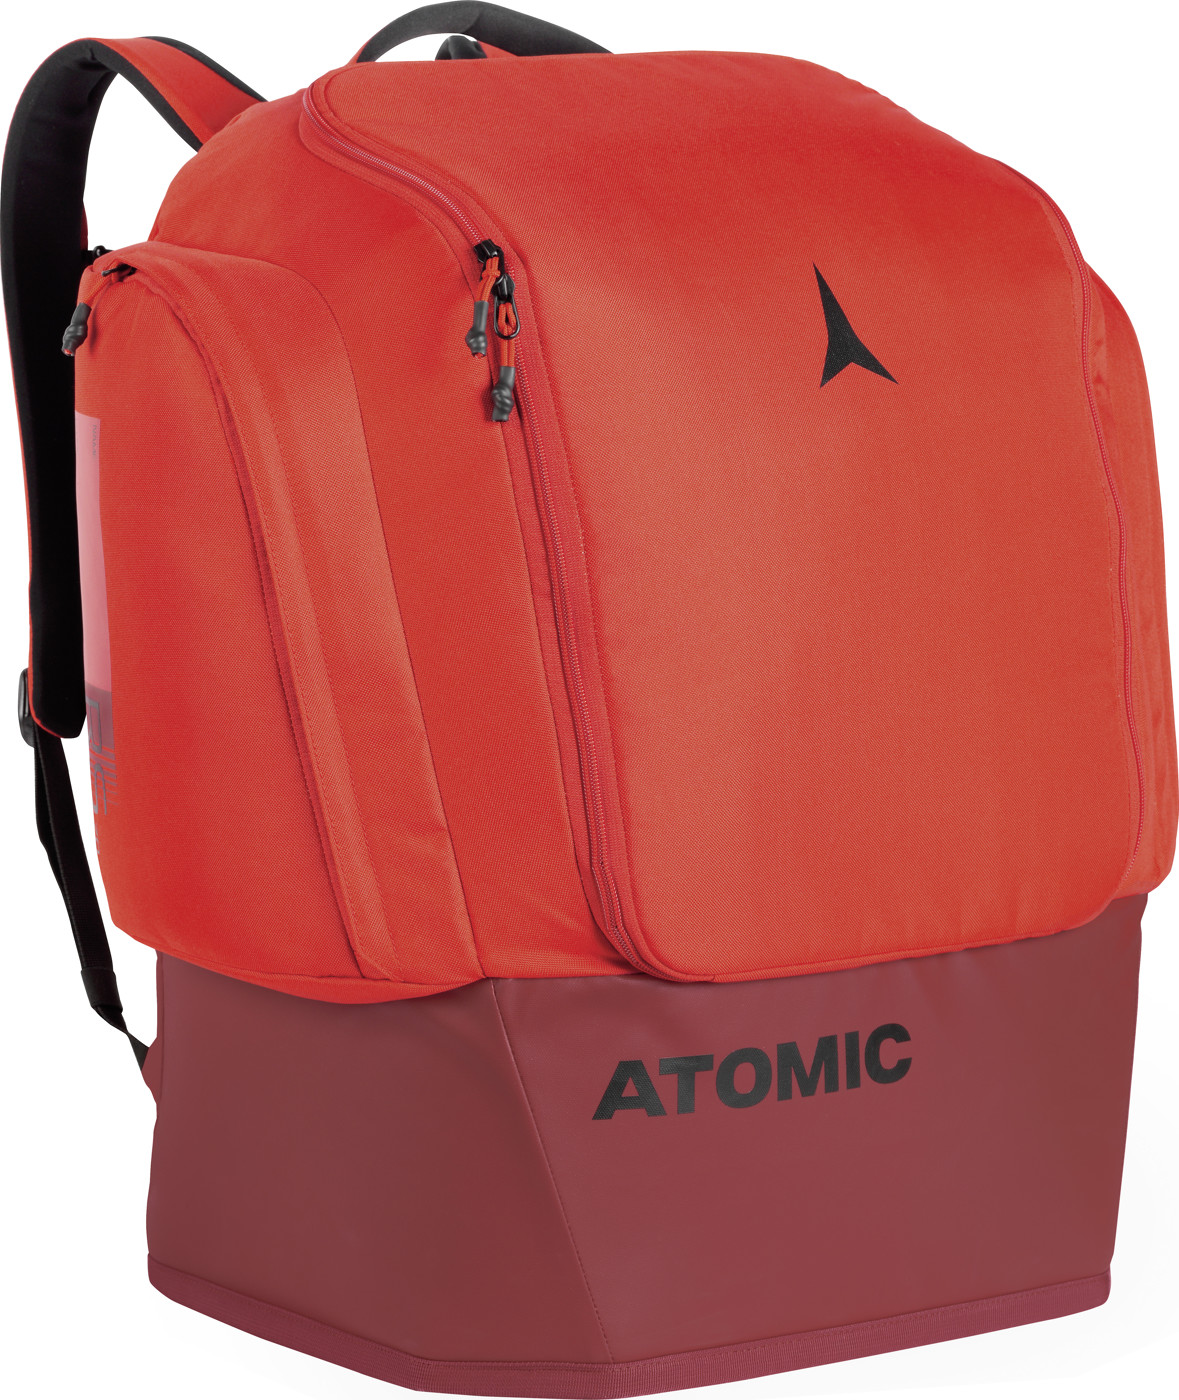 ATOMIC RS HEATED BOOT PACK 230V Red/Rio Red NS